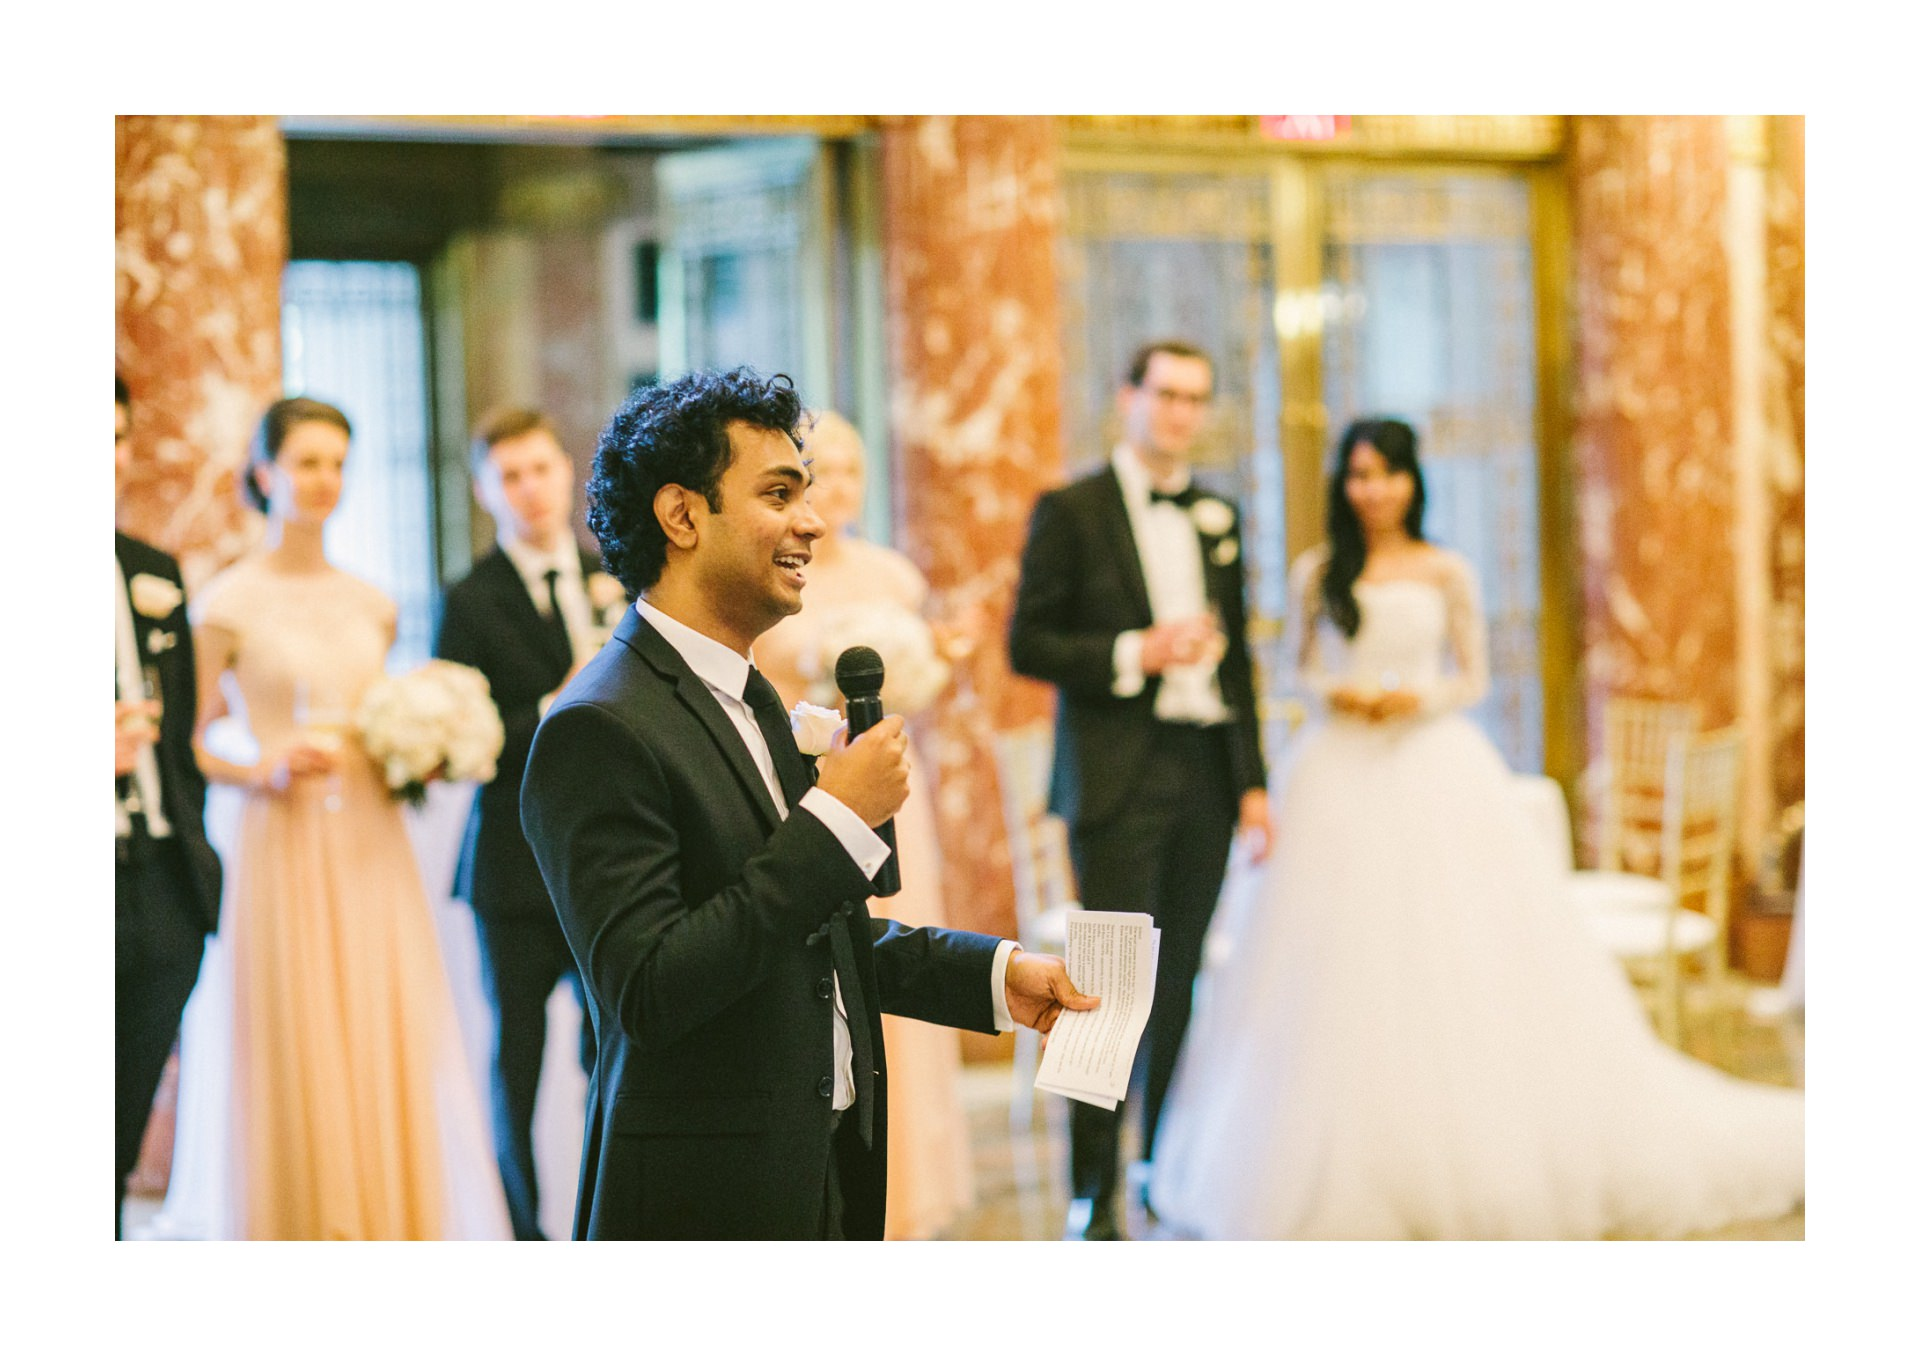 Severance Hall Wedding Photographer in Cleveland 51.jpg